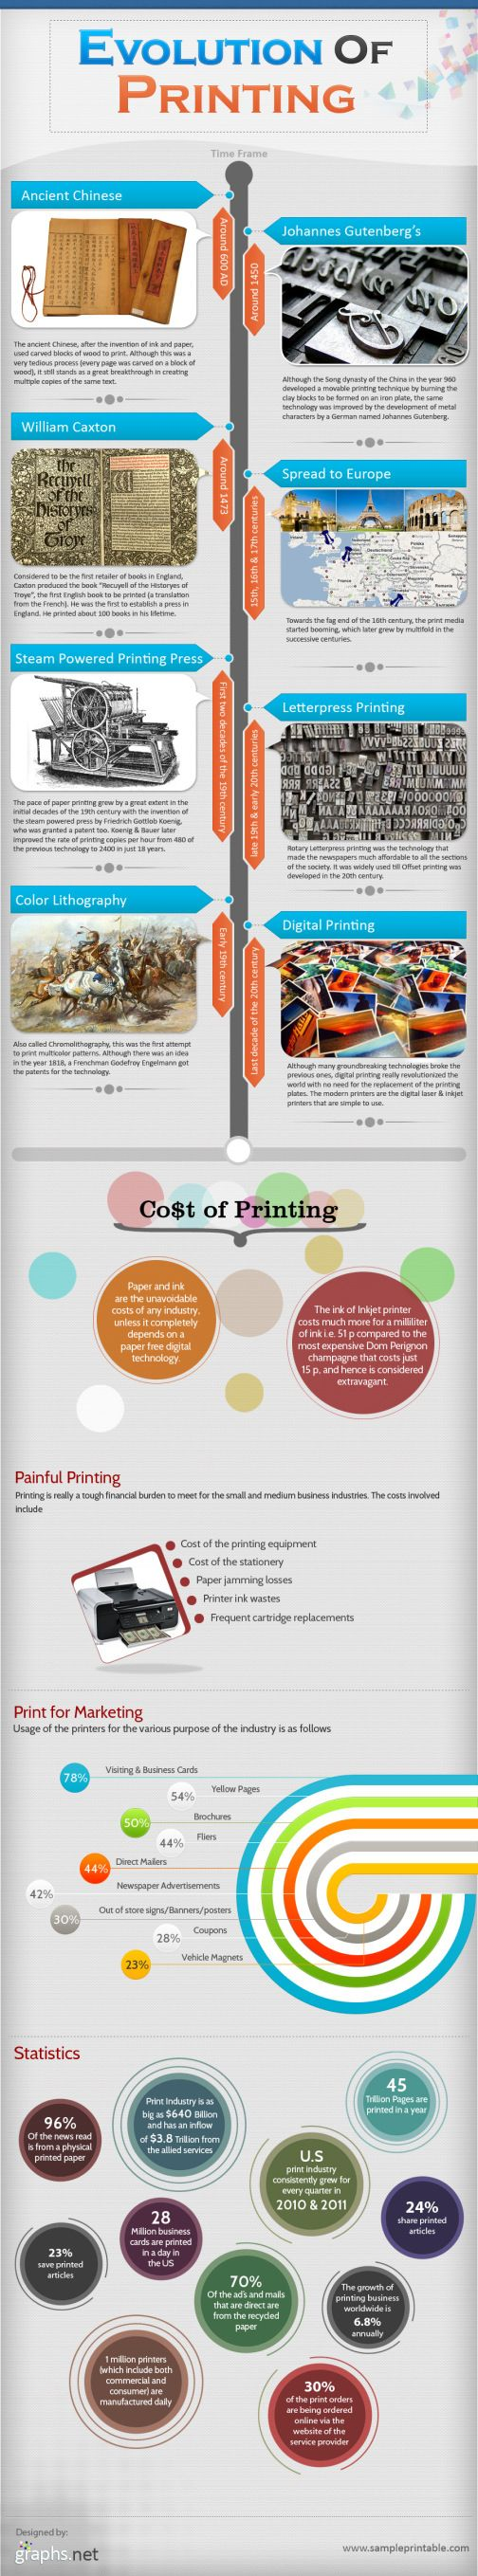 This infographic presents a brief history and evolution of the printing process. It also provides interesting statistics and facts about the print med